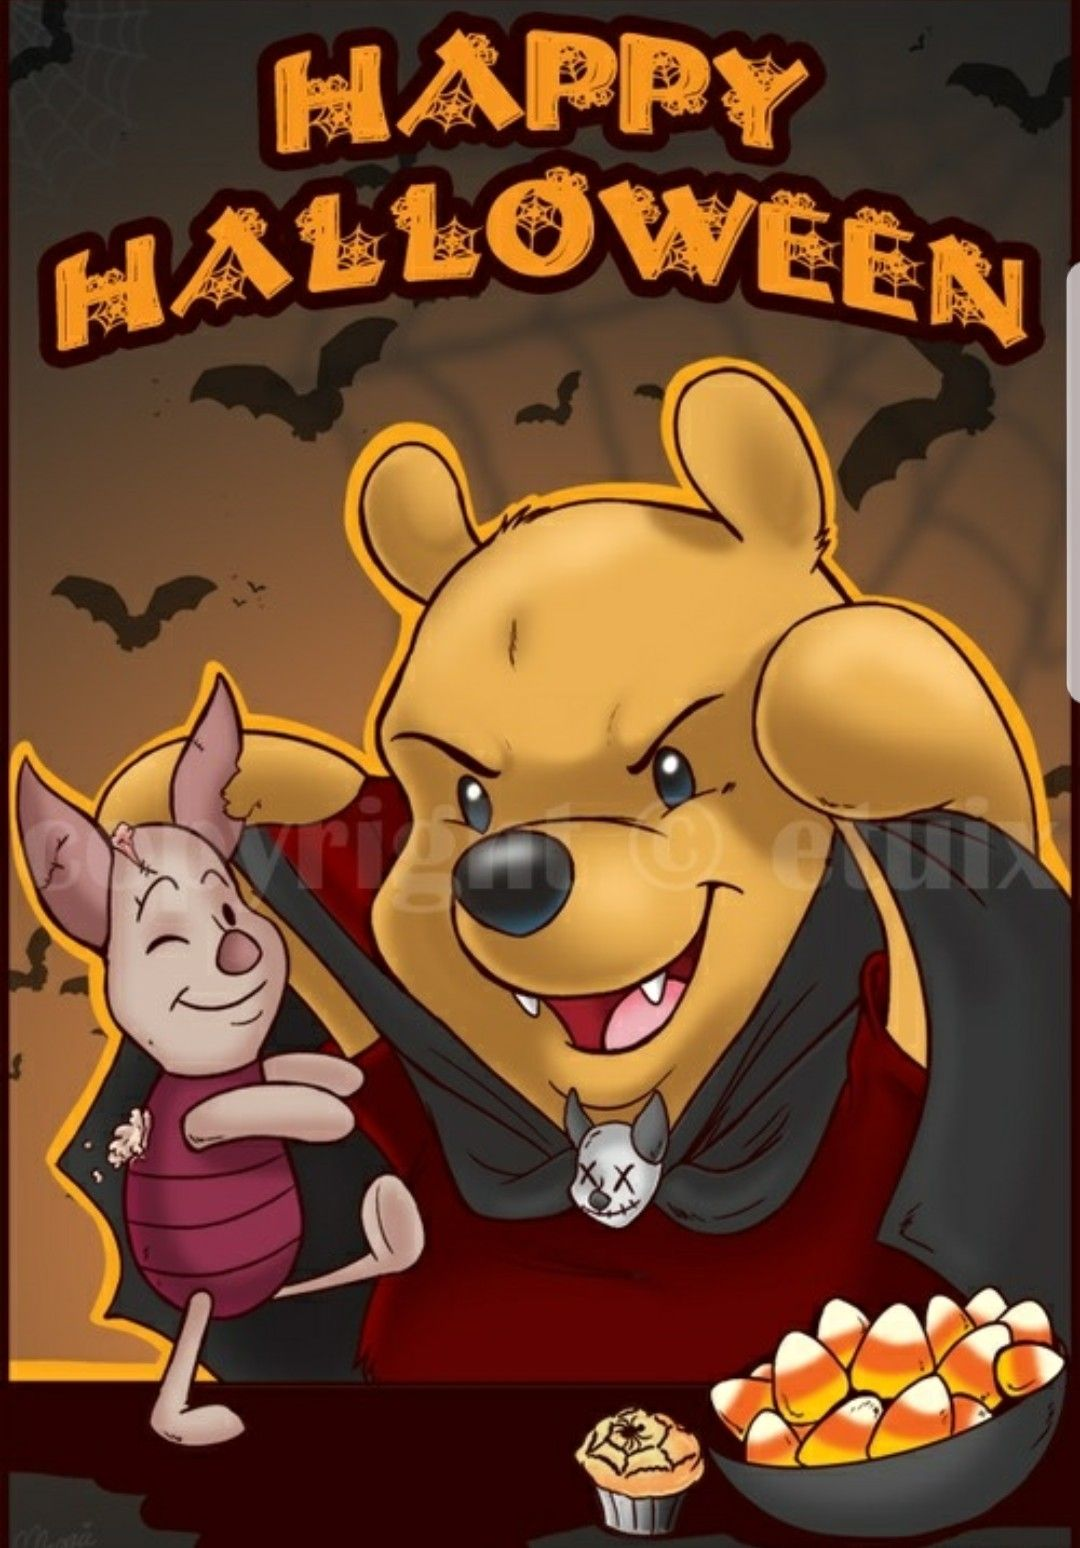 Imagenes De Halloween Png - Imagenes De Halloween Png